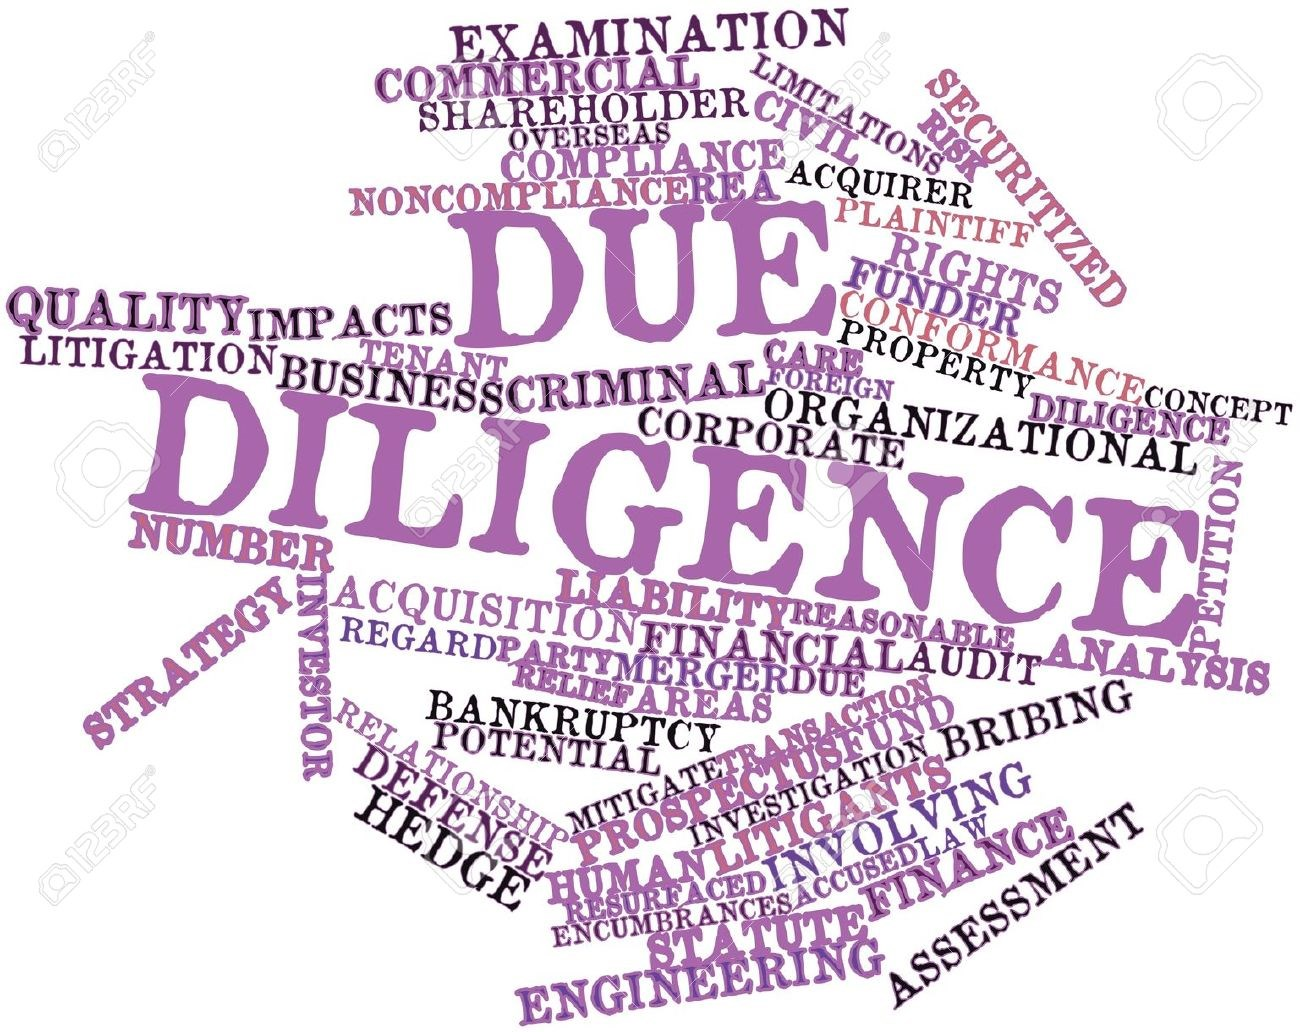 Digital Due Diligence: Why 'Just Google It' Isn't The Answer...